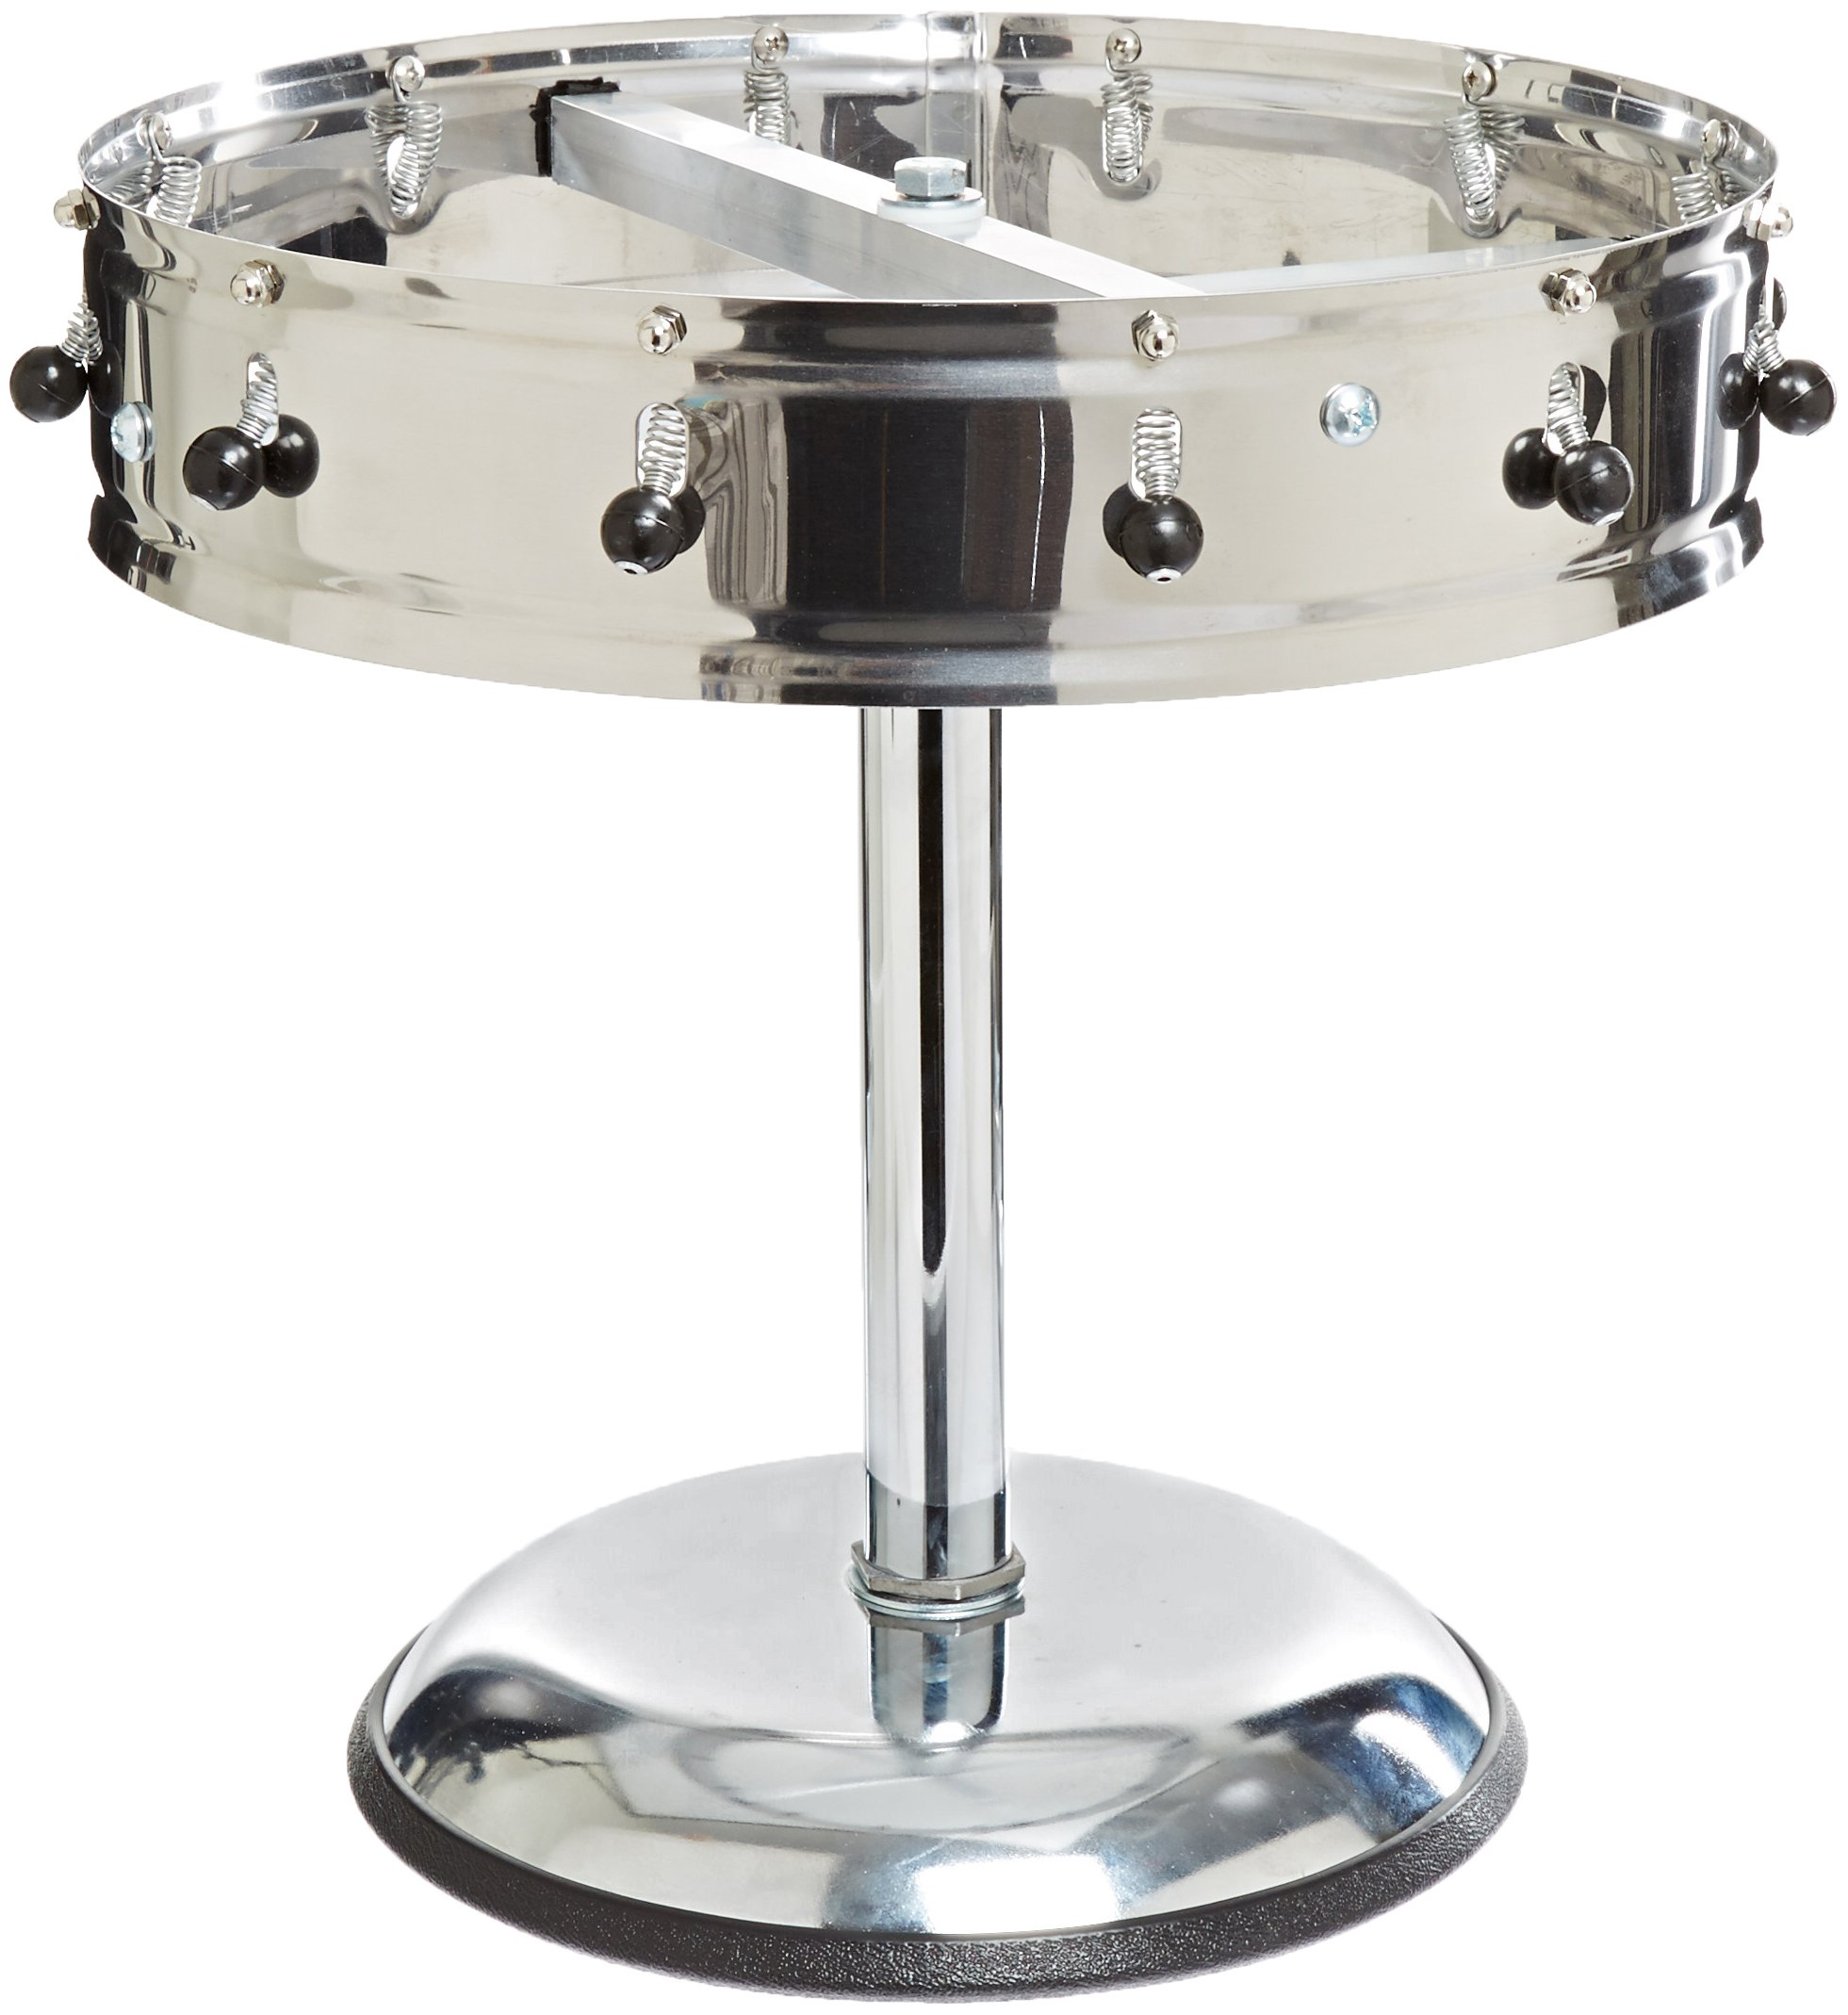 Carlisle 3812MP Stainless Steel Portable Order Wheel with 12 Clips, 14'' Diameter x 5.75'' Height by Carlisle (Image #2)